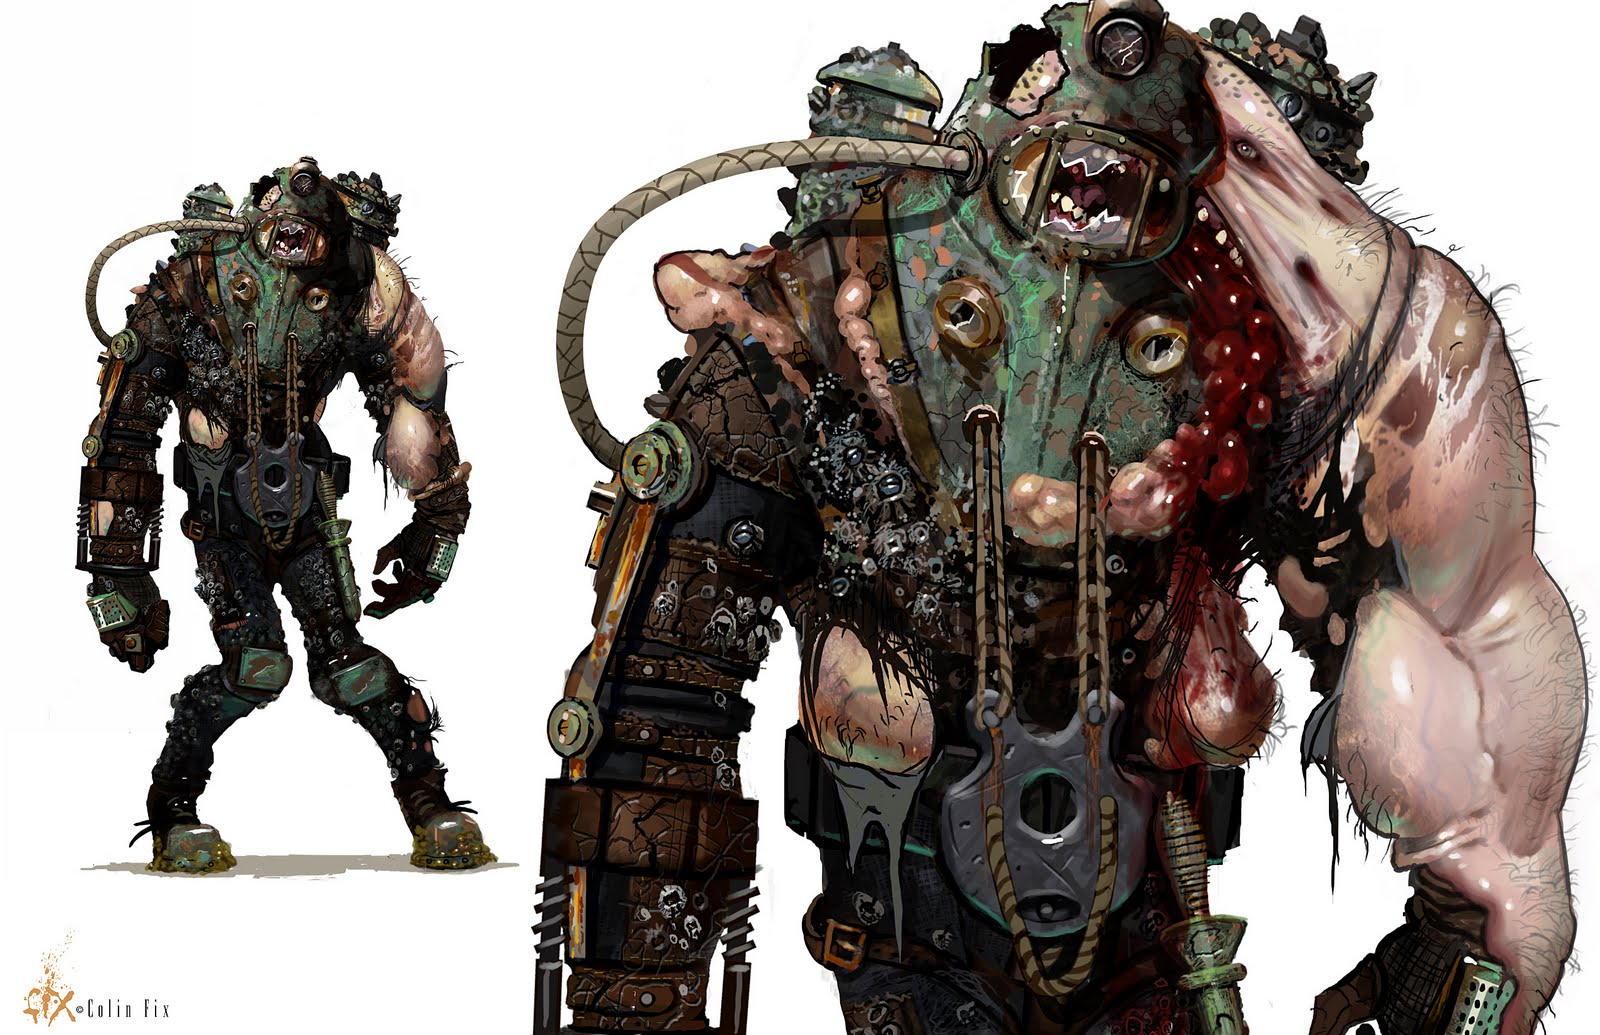 Bioshock What Does A Big Daddy Look Like Under His Suit